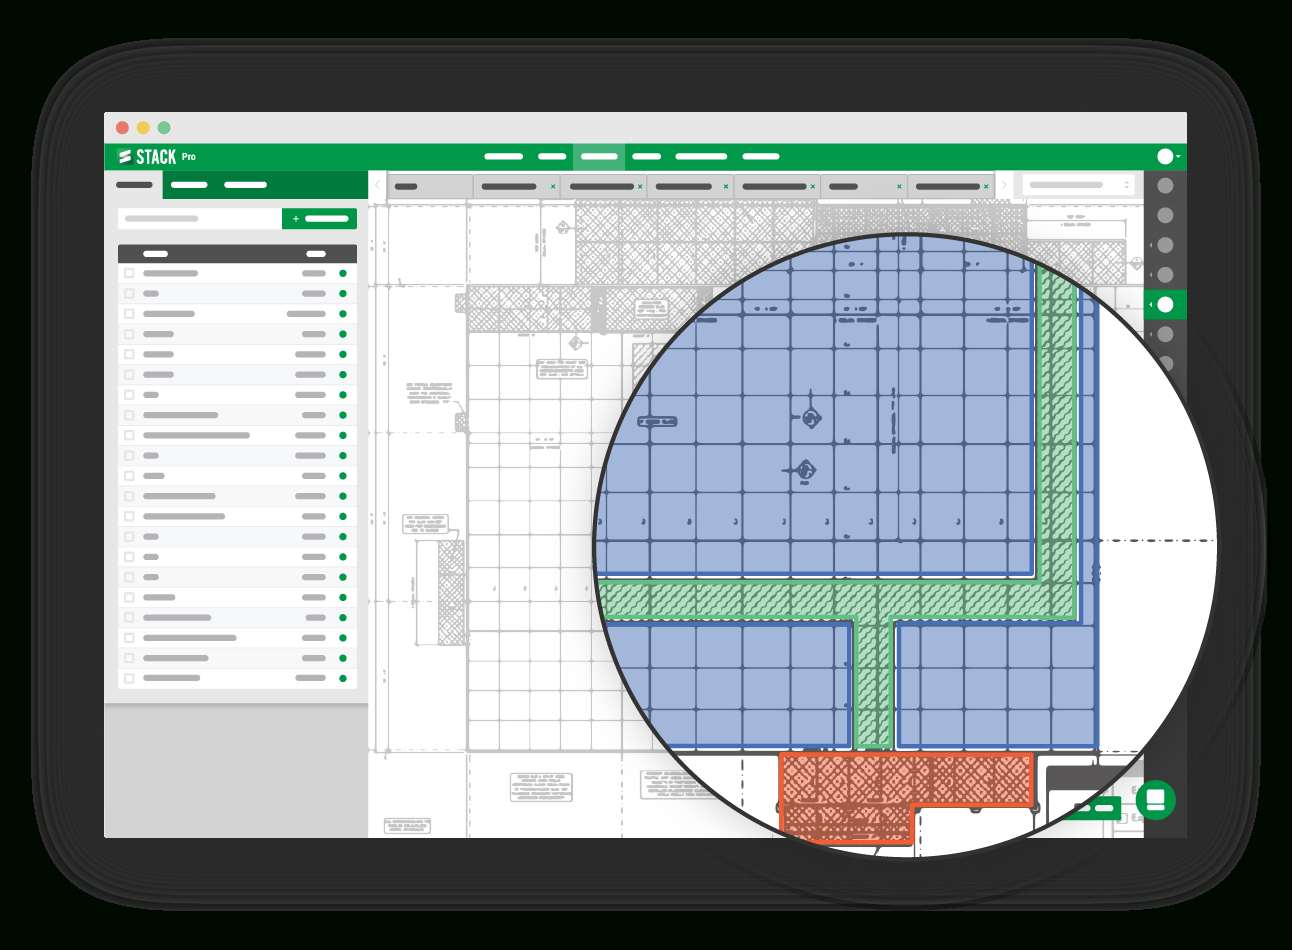 Concrete Slab On Grade Design Spreadsheet In Concrete Estimating And Takeoff Software  Stack